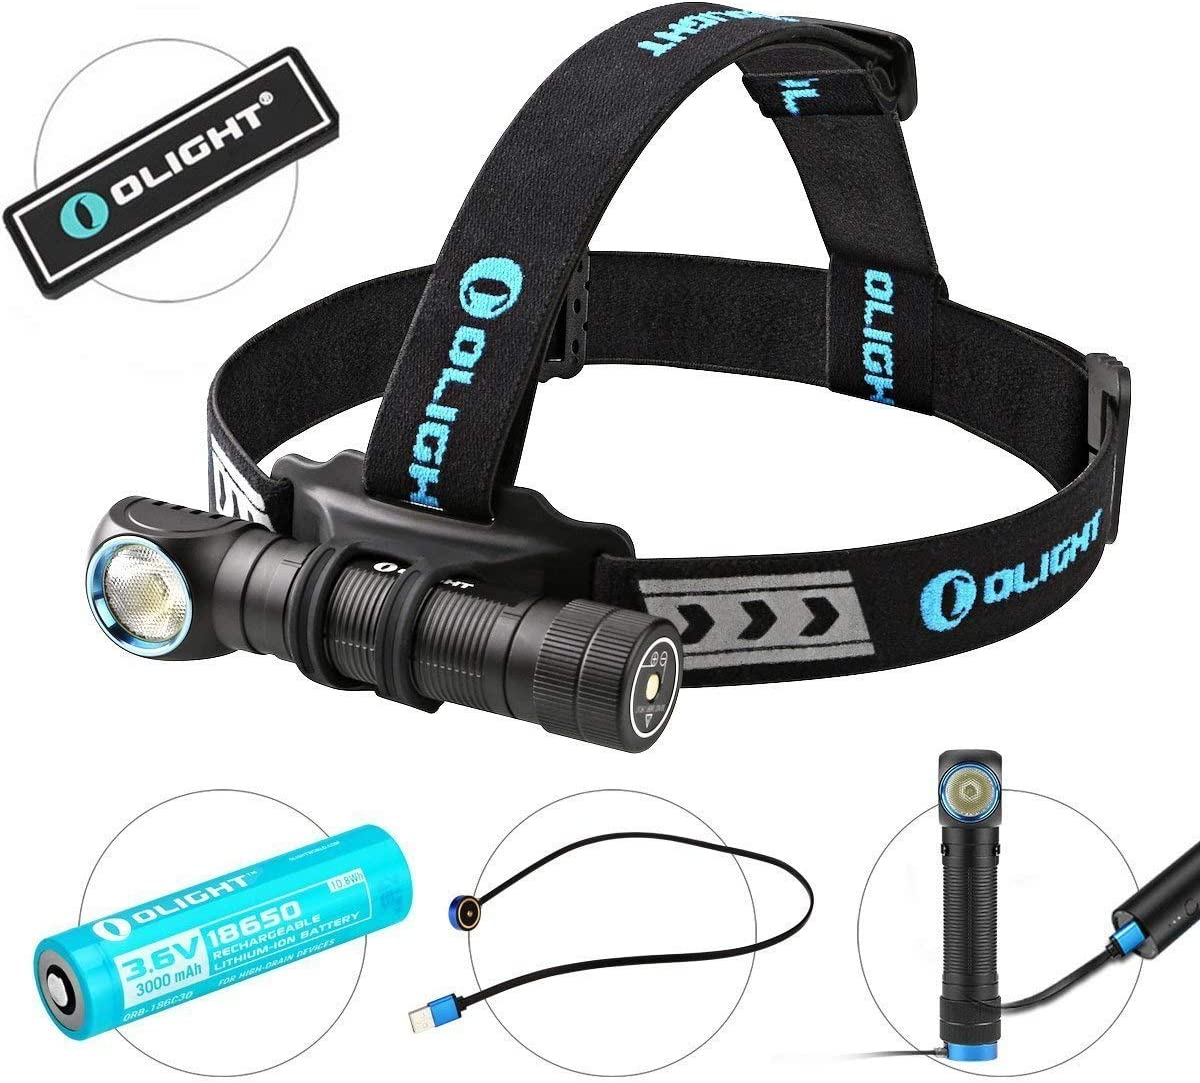 OLight H2R Cree LED Rechargeable Headlamp